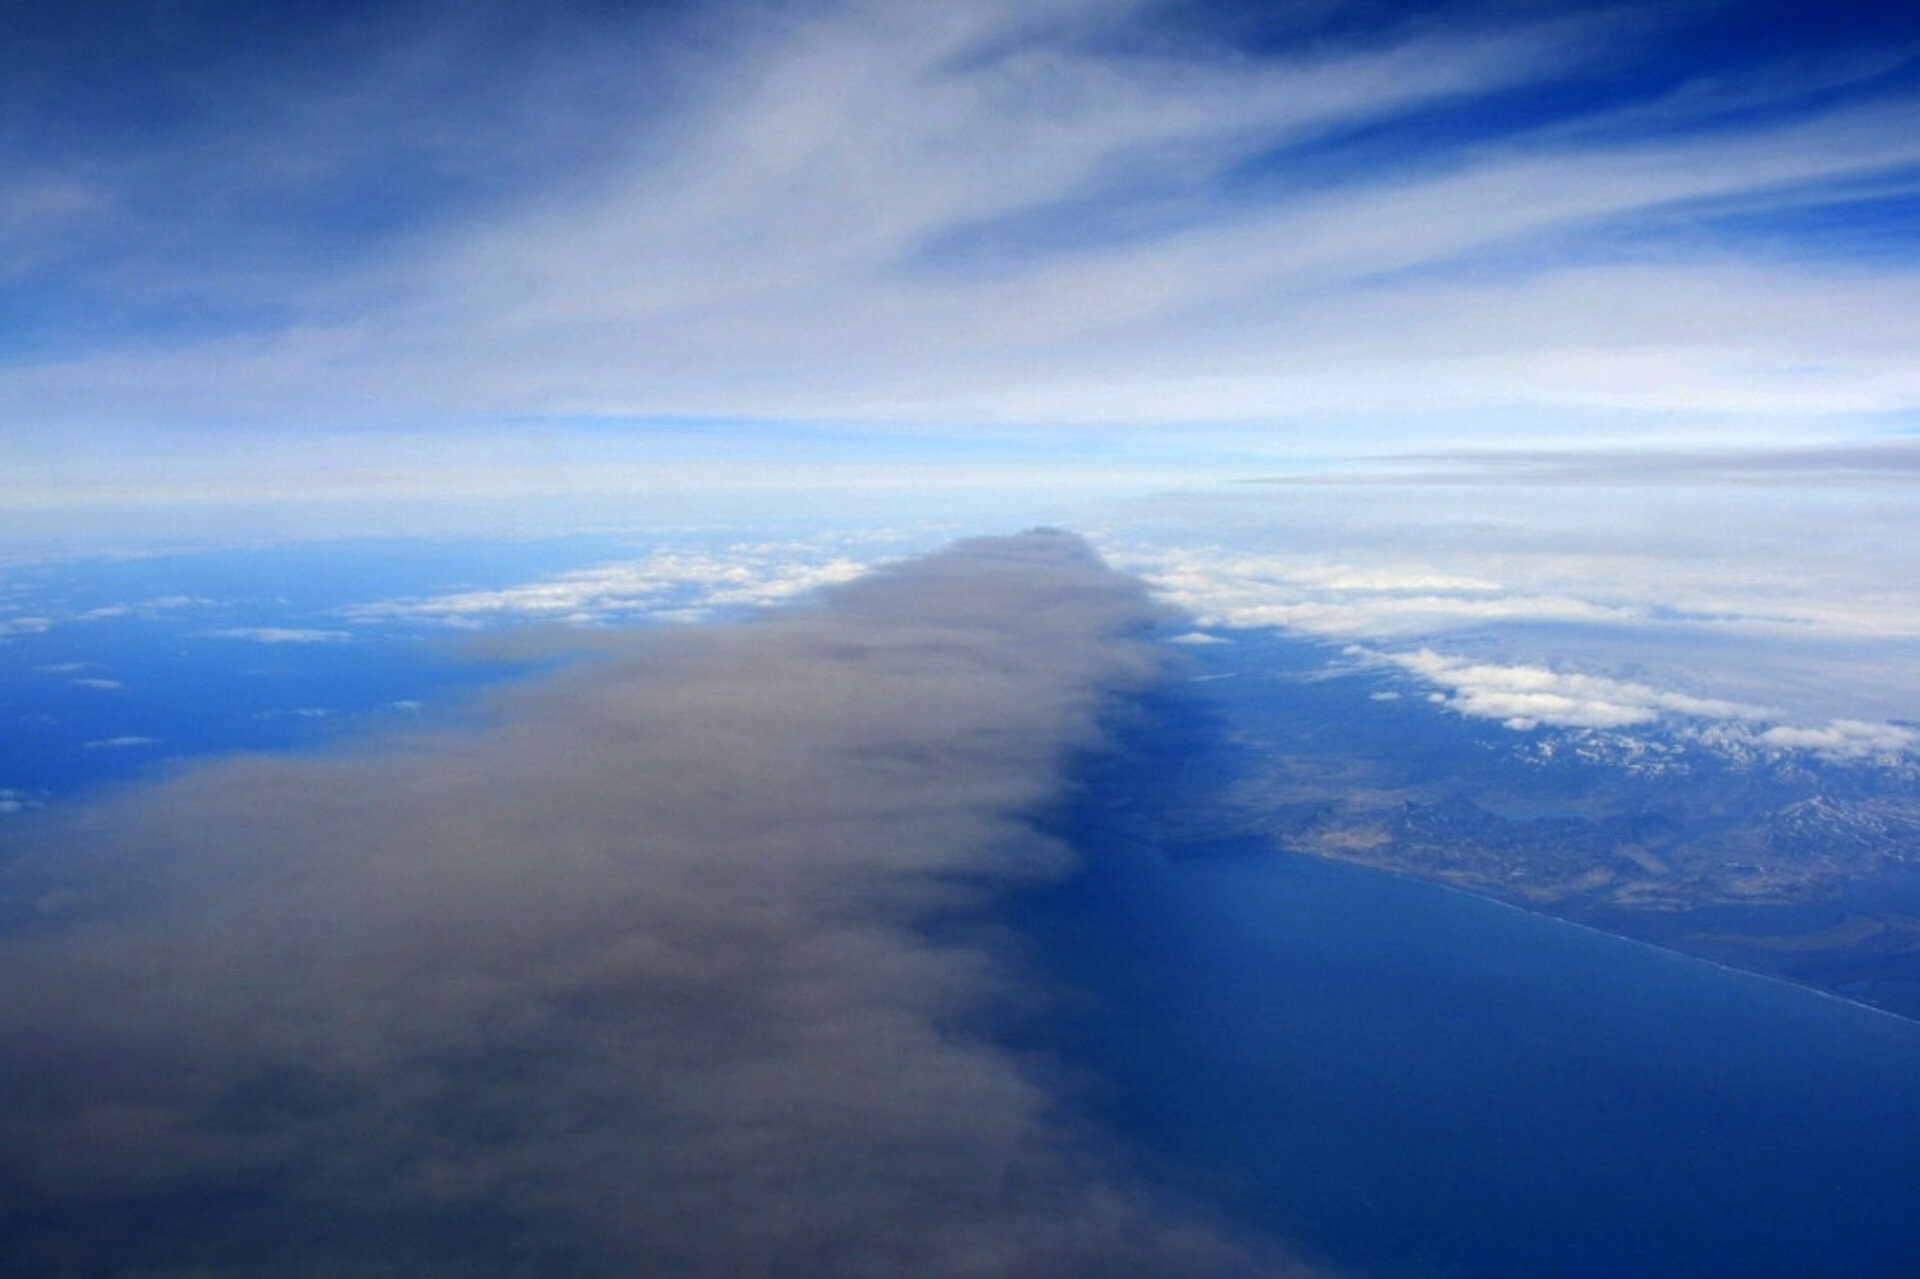 Volcano plume from Falcon aircraft